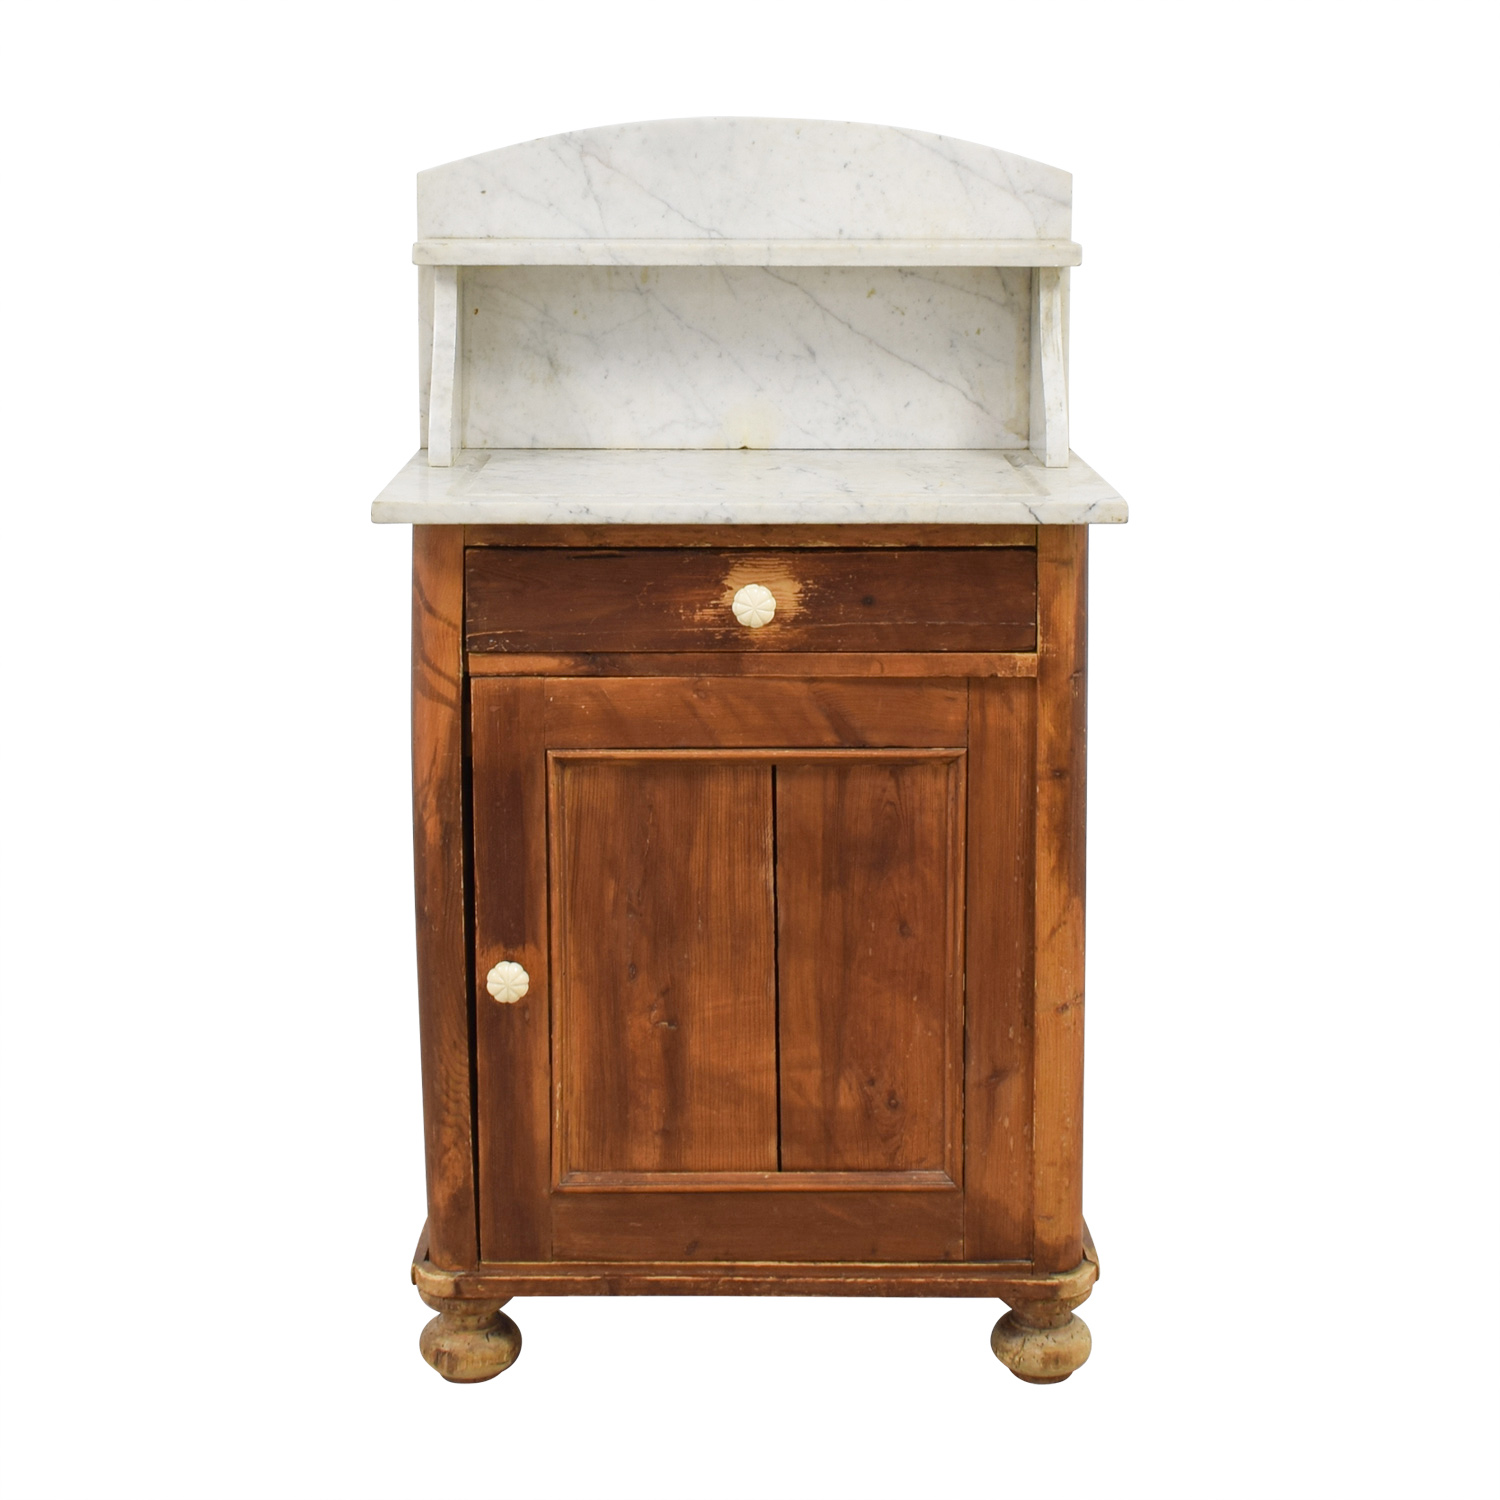 Evergreen Evergreen Rustic Marble Topped Storage Cabinet price